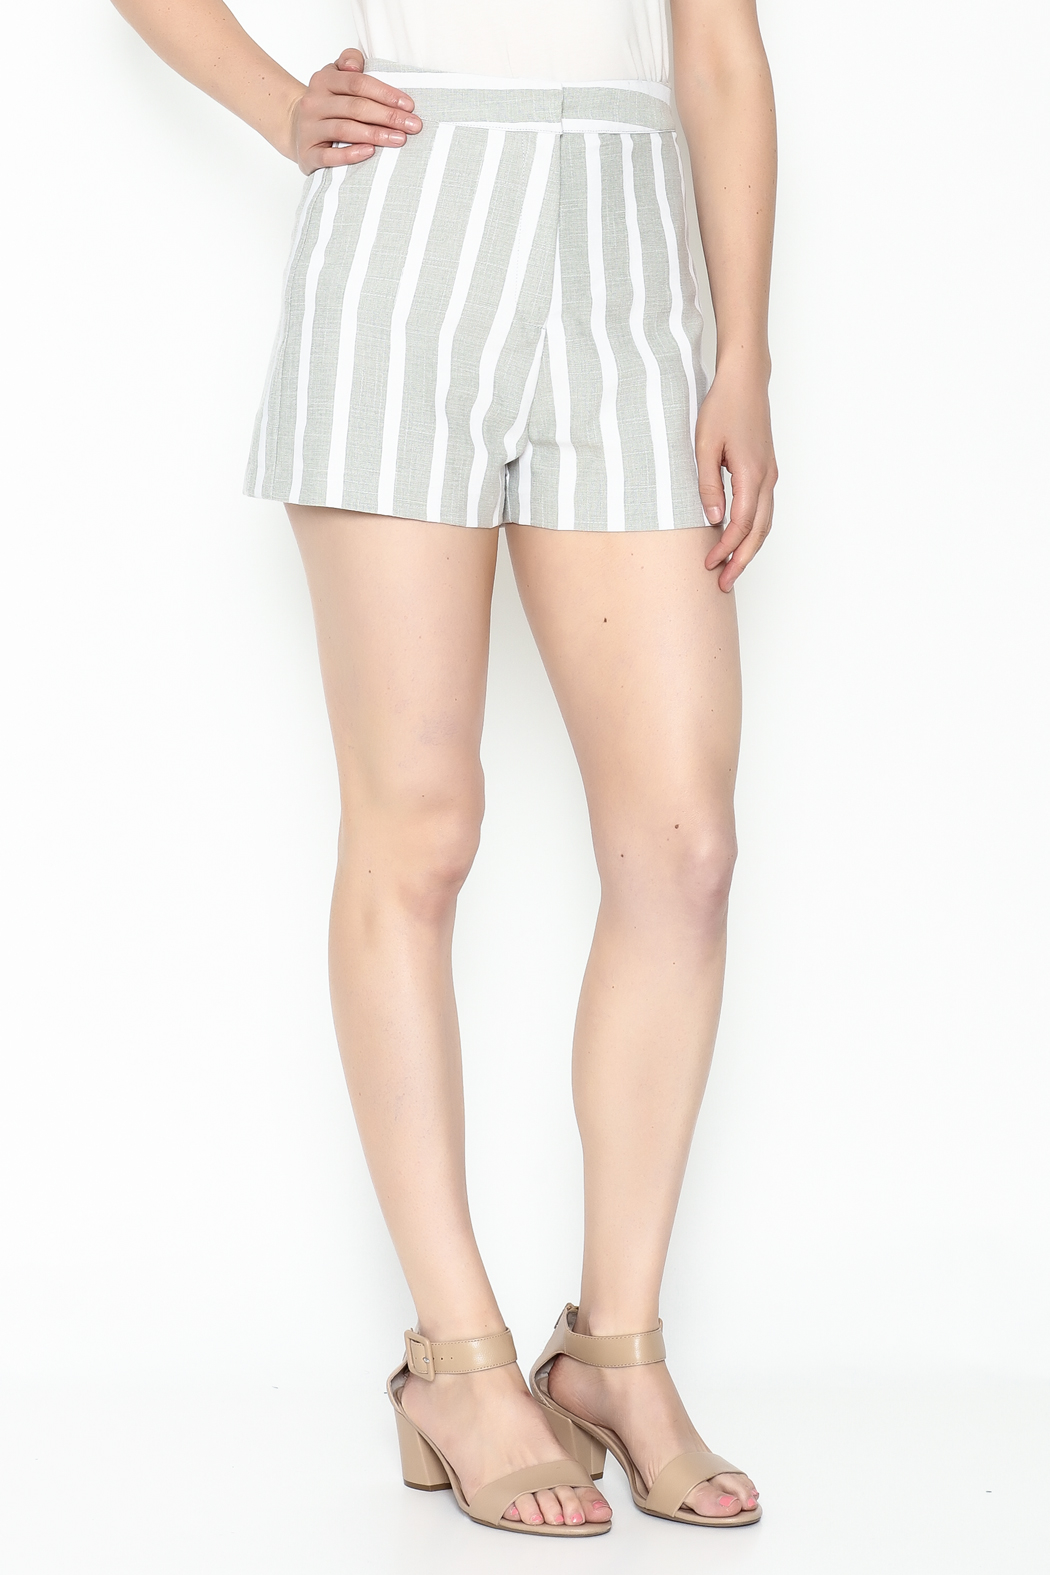 After Market Striped Grey Shorts - Main Image